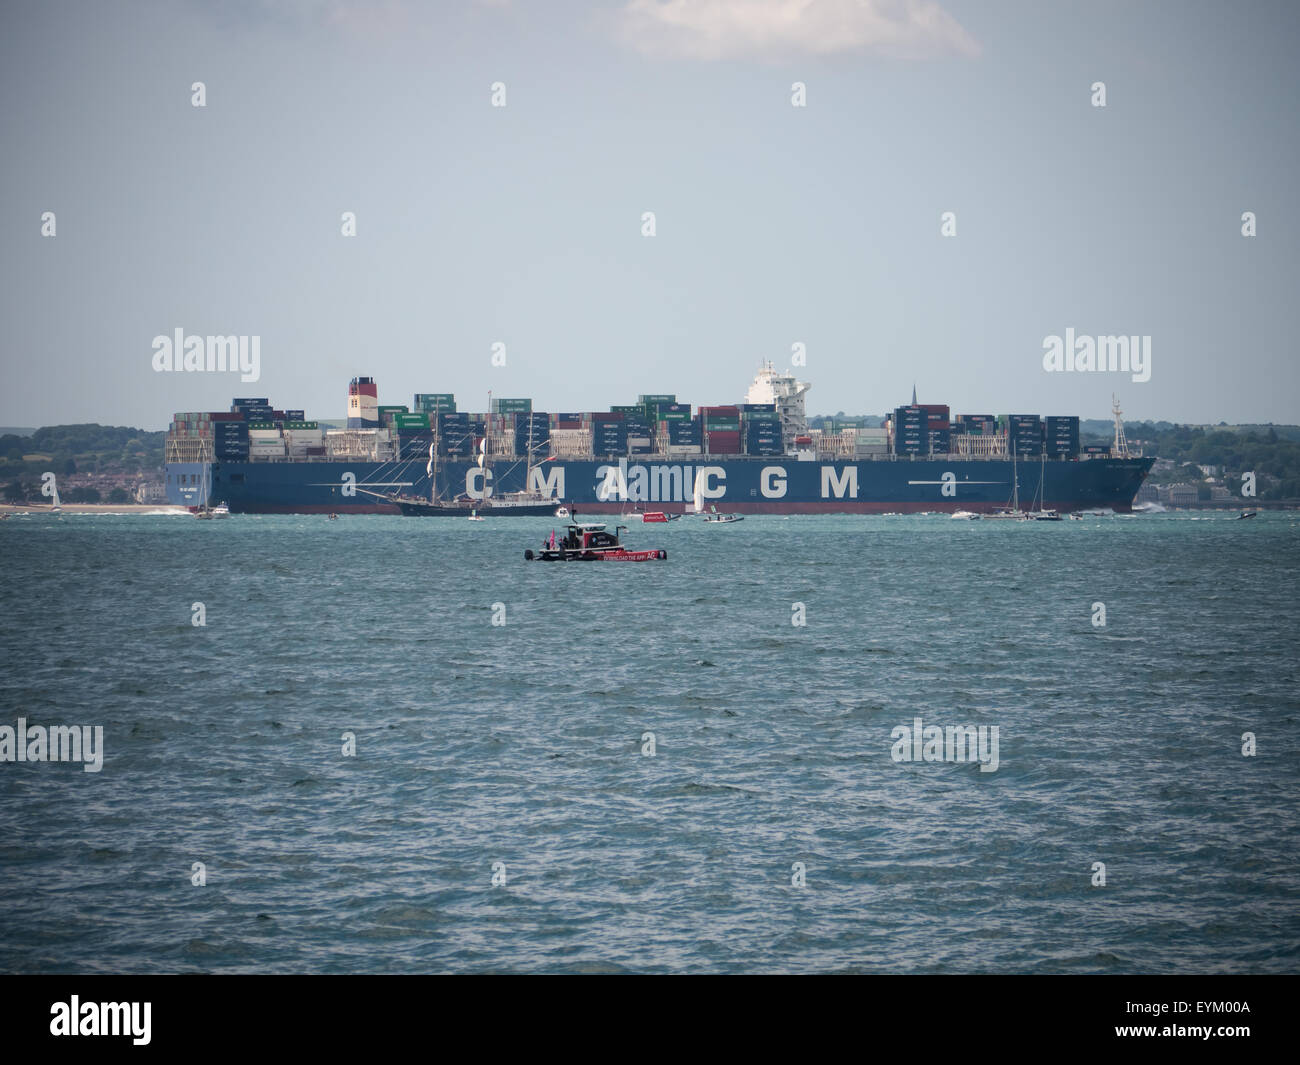 A CMA CGM container vessel in the Solent, England - Stock Image